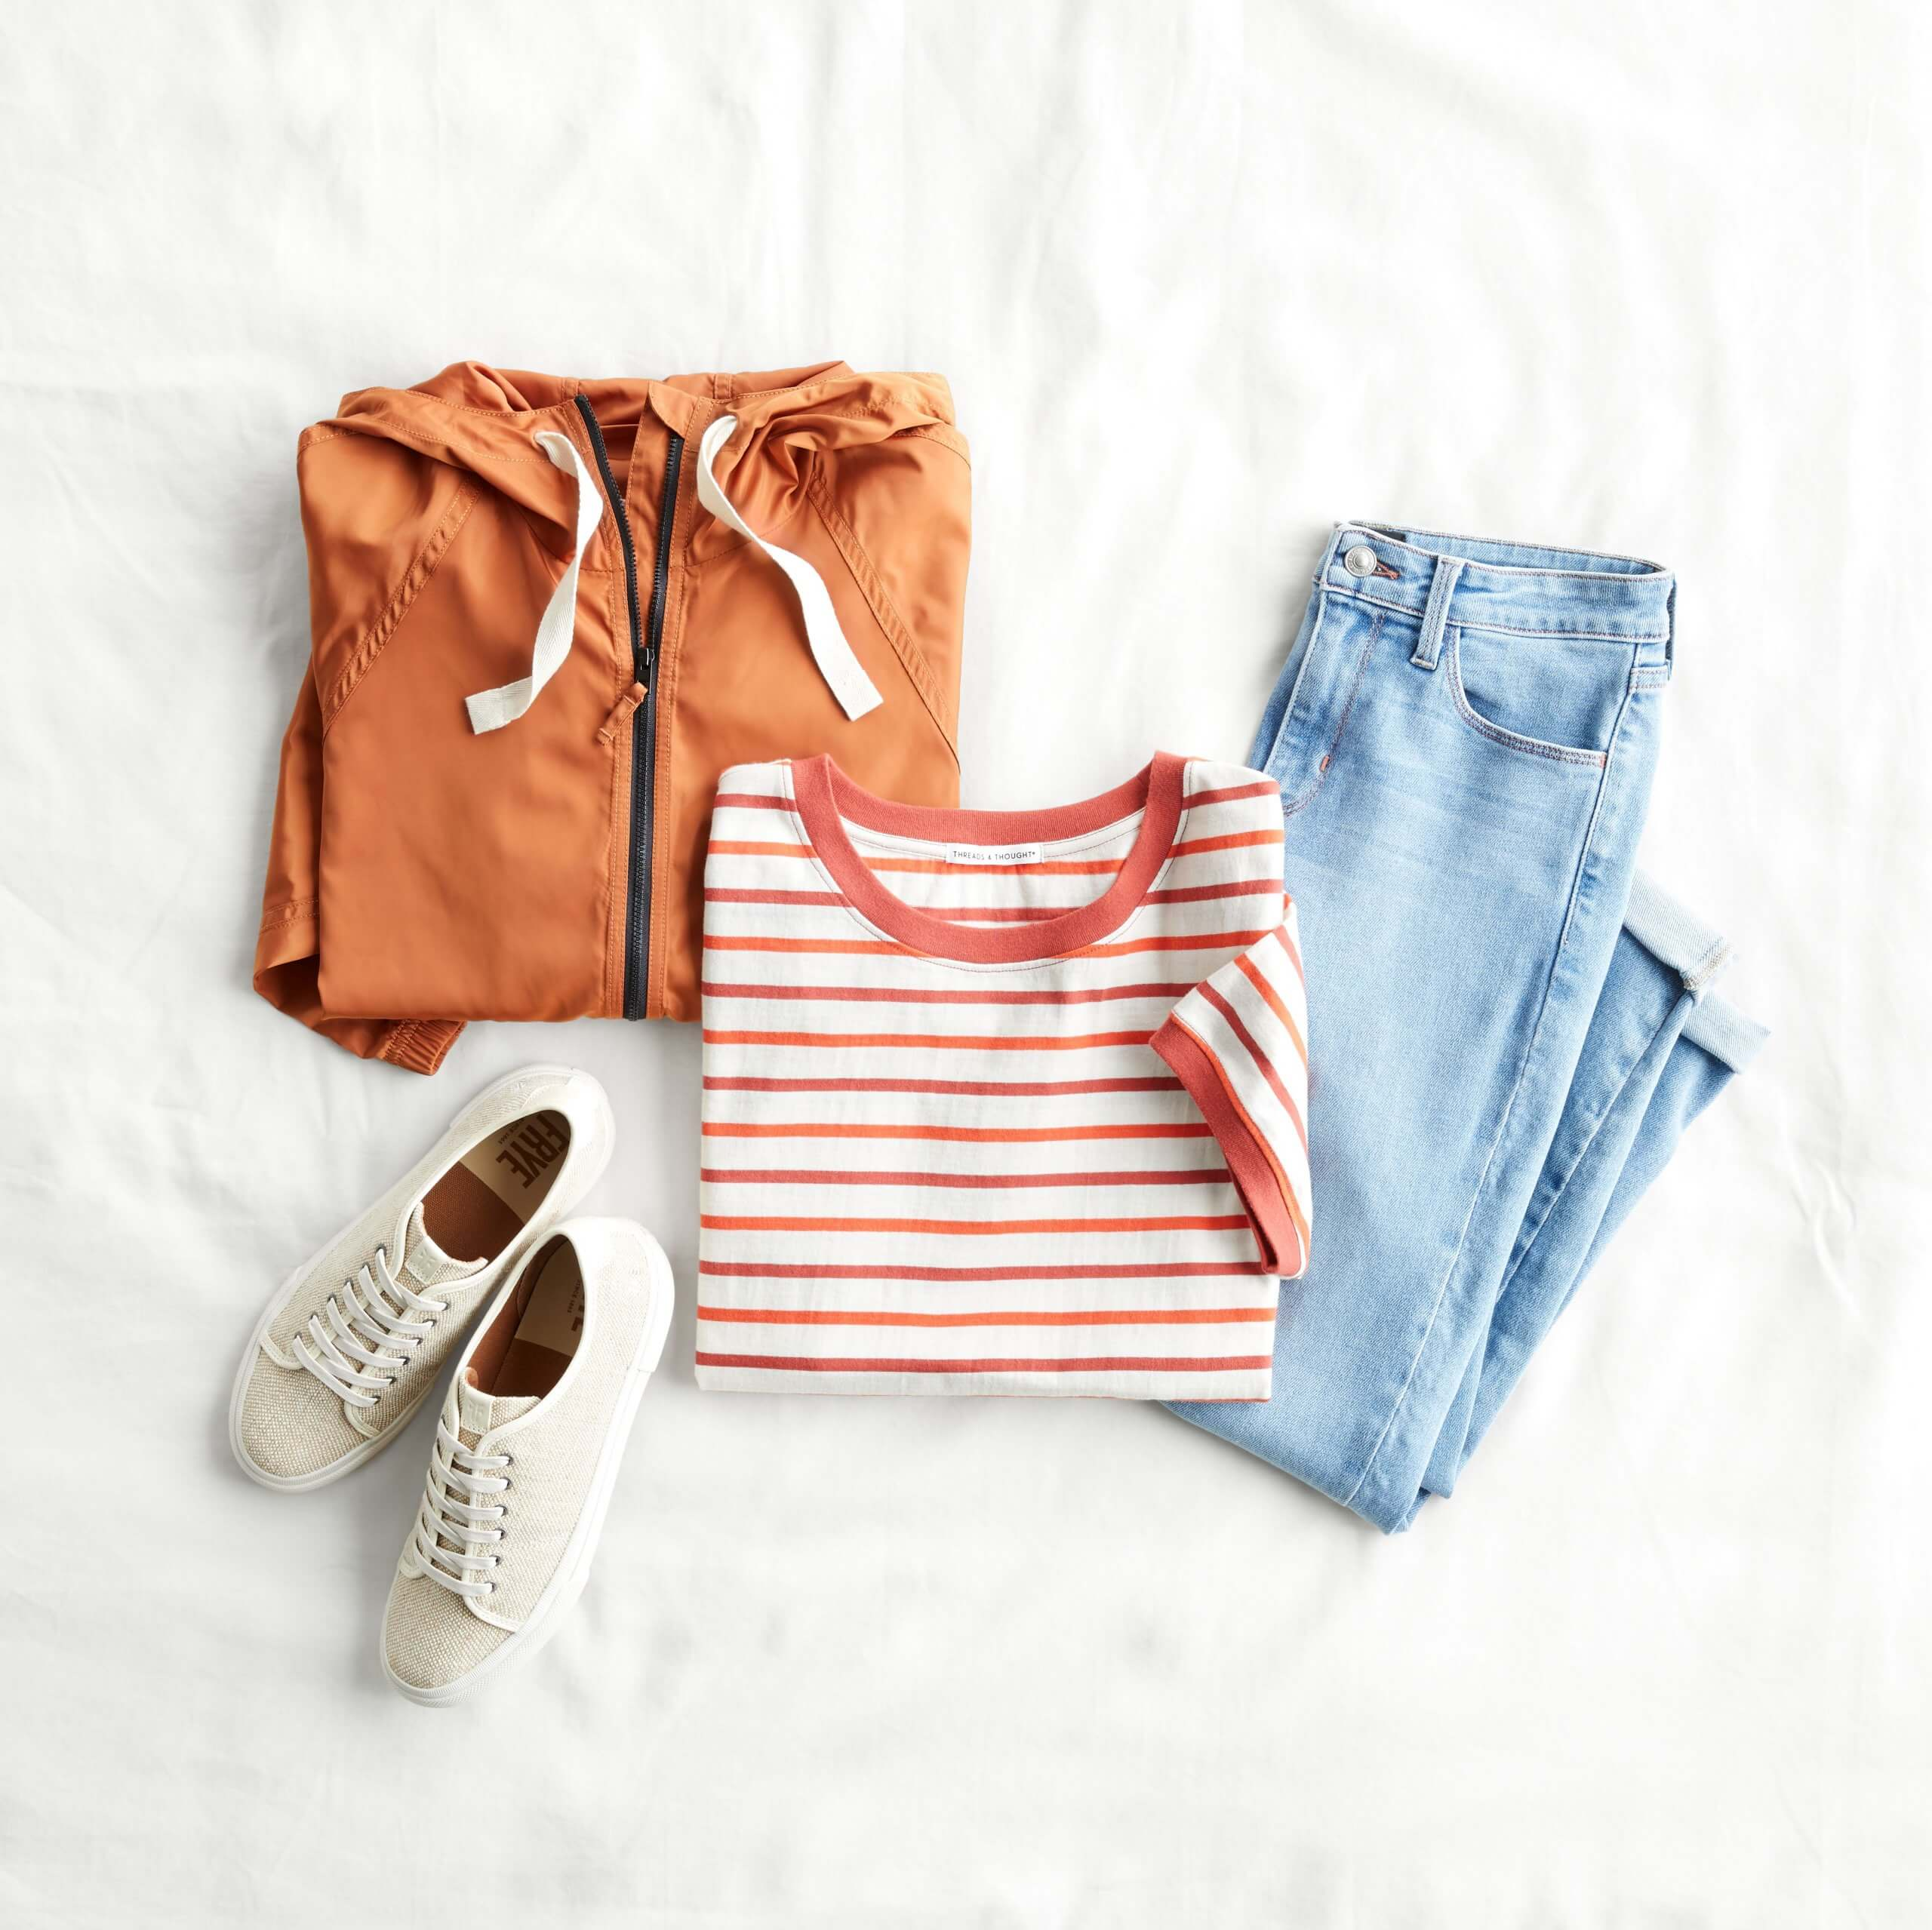 Stitch Fix Women's outfit laydown featuring orange and white striped tee, lightwash jeans, white sneakers and orange rain jacket.